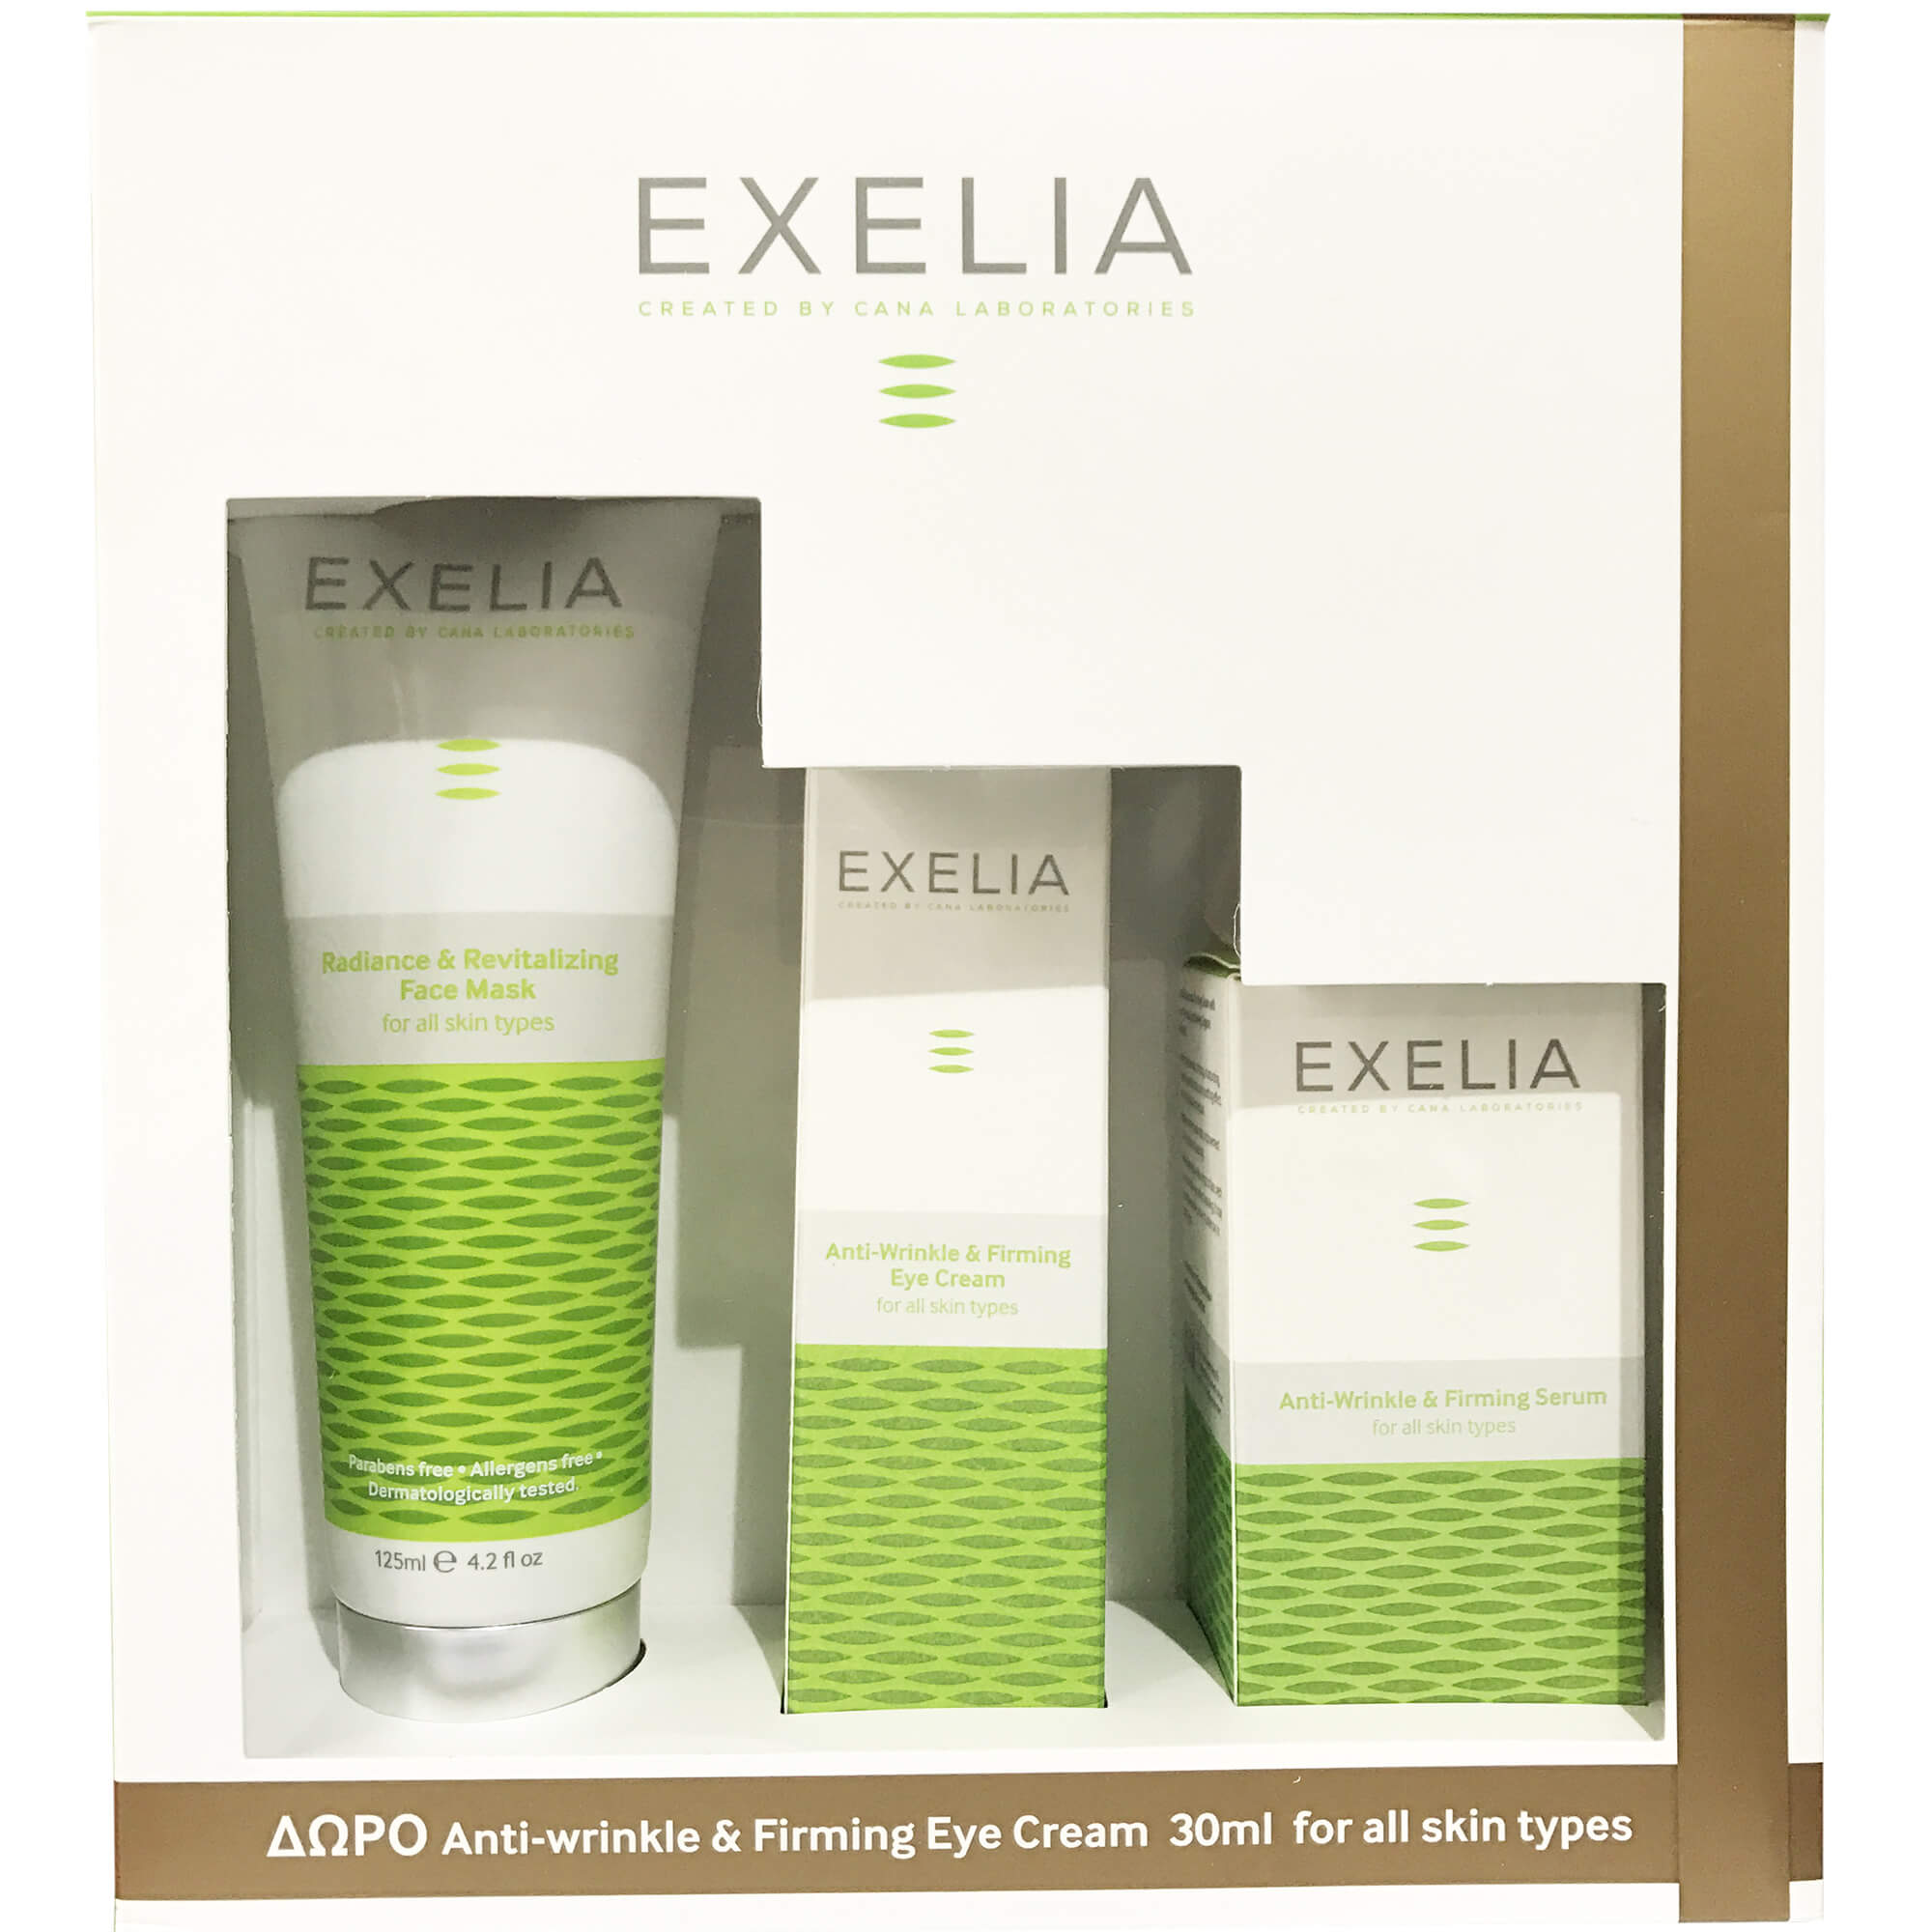 Exelia Πακέτο Προσφοράς Radiance & Revitalizing Face Mask 125ml & Δώρο Anti-Wrinkle & Firming Eye Cream 30ml & Serum 30ml